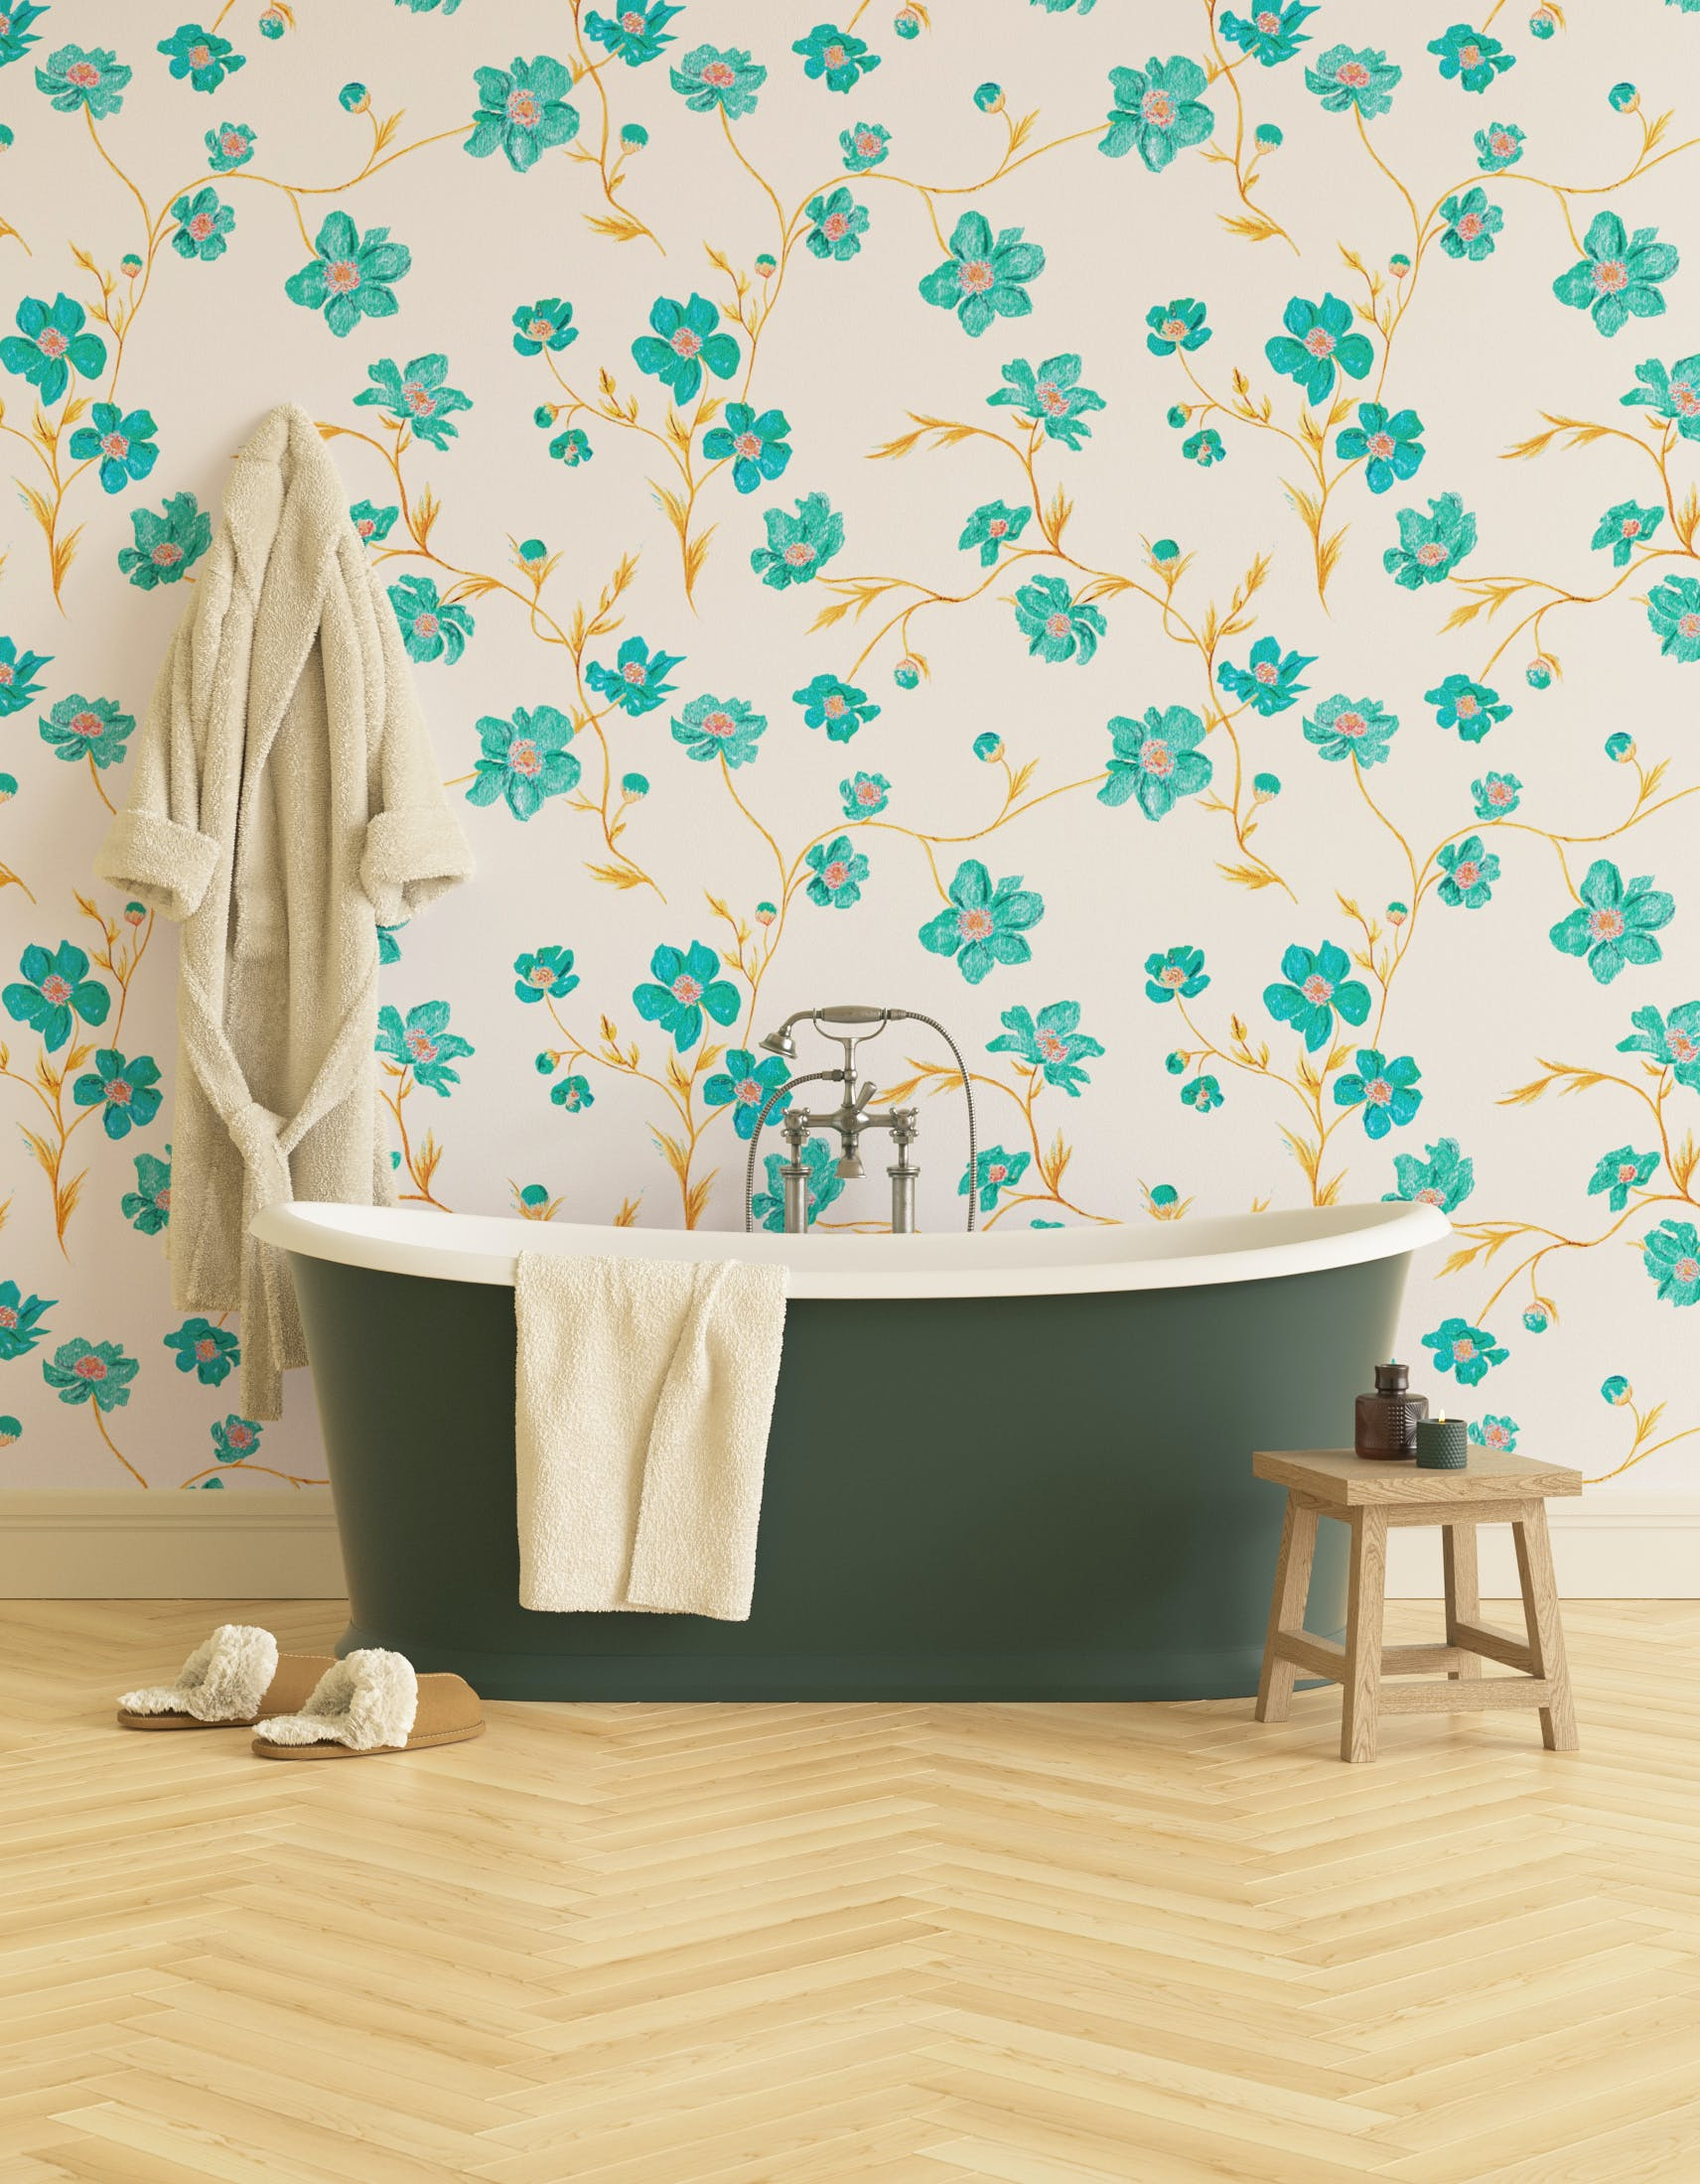 Bathroom decorated with Lick x Jenna Hewitt Anemone 01 turquoise floral wallpaper